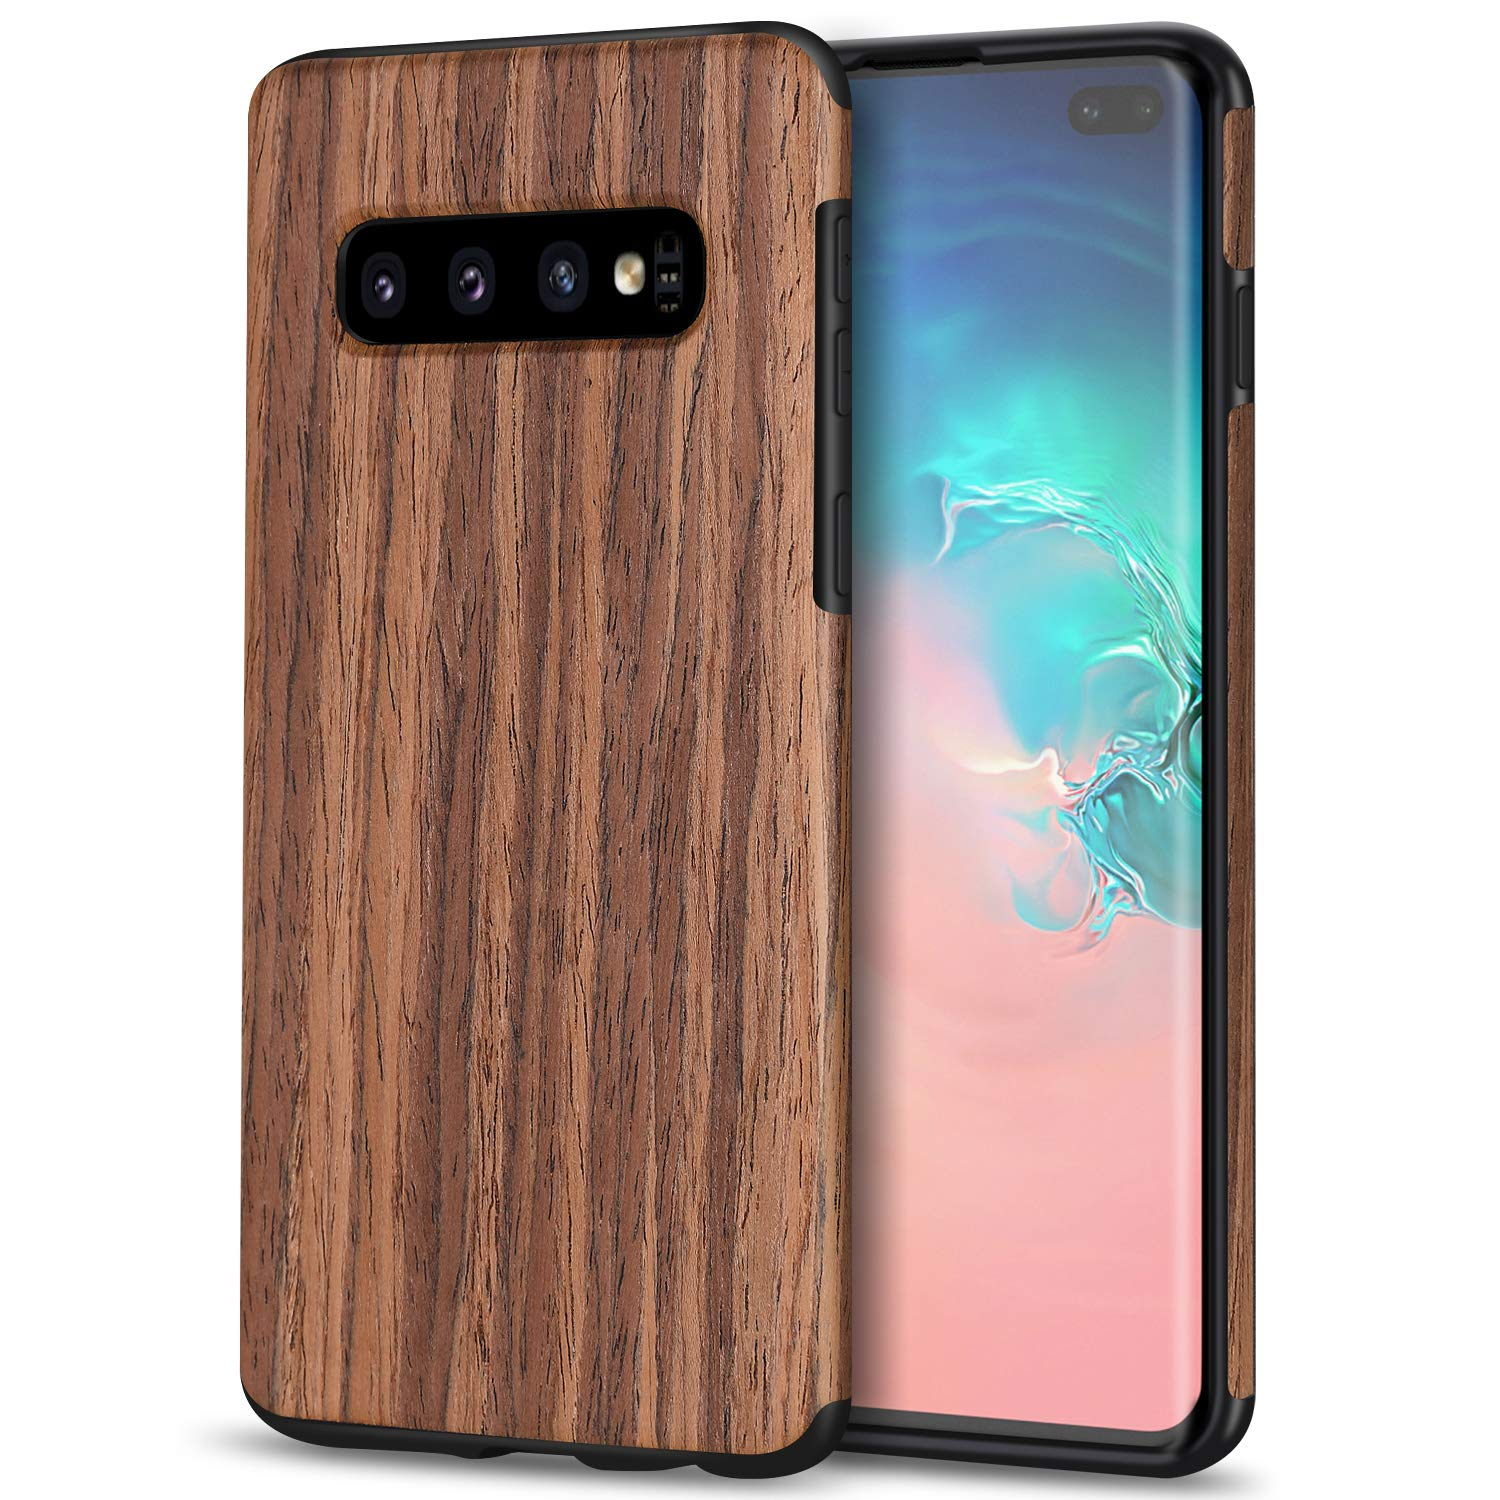 TENDLIN Galaxy S10 Plus Case Wood Grain Design and Flexible TPU Silicone Hybrid Slim Case Compatible with Samsung Galaxy S10+ (Red Sandalwood)